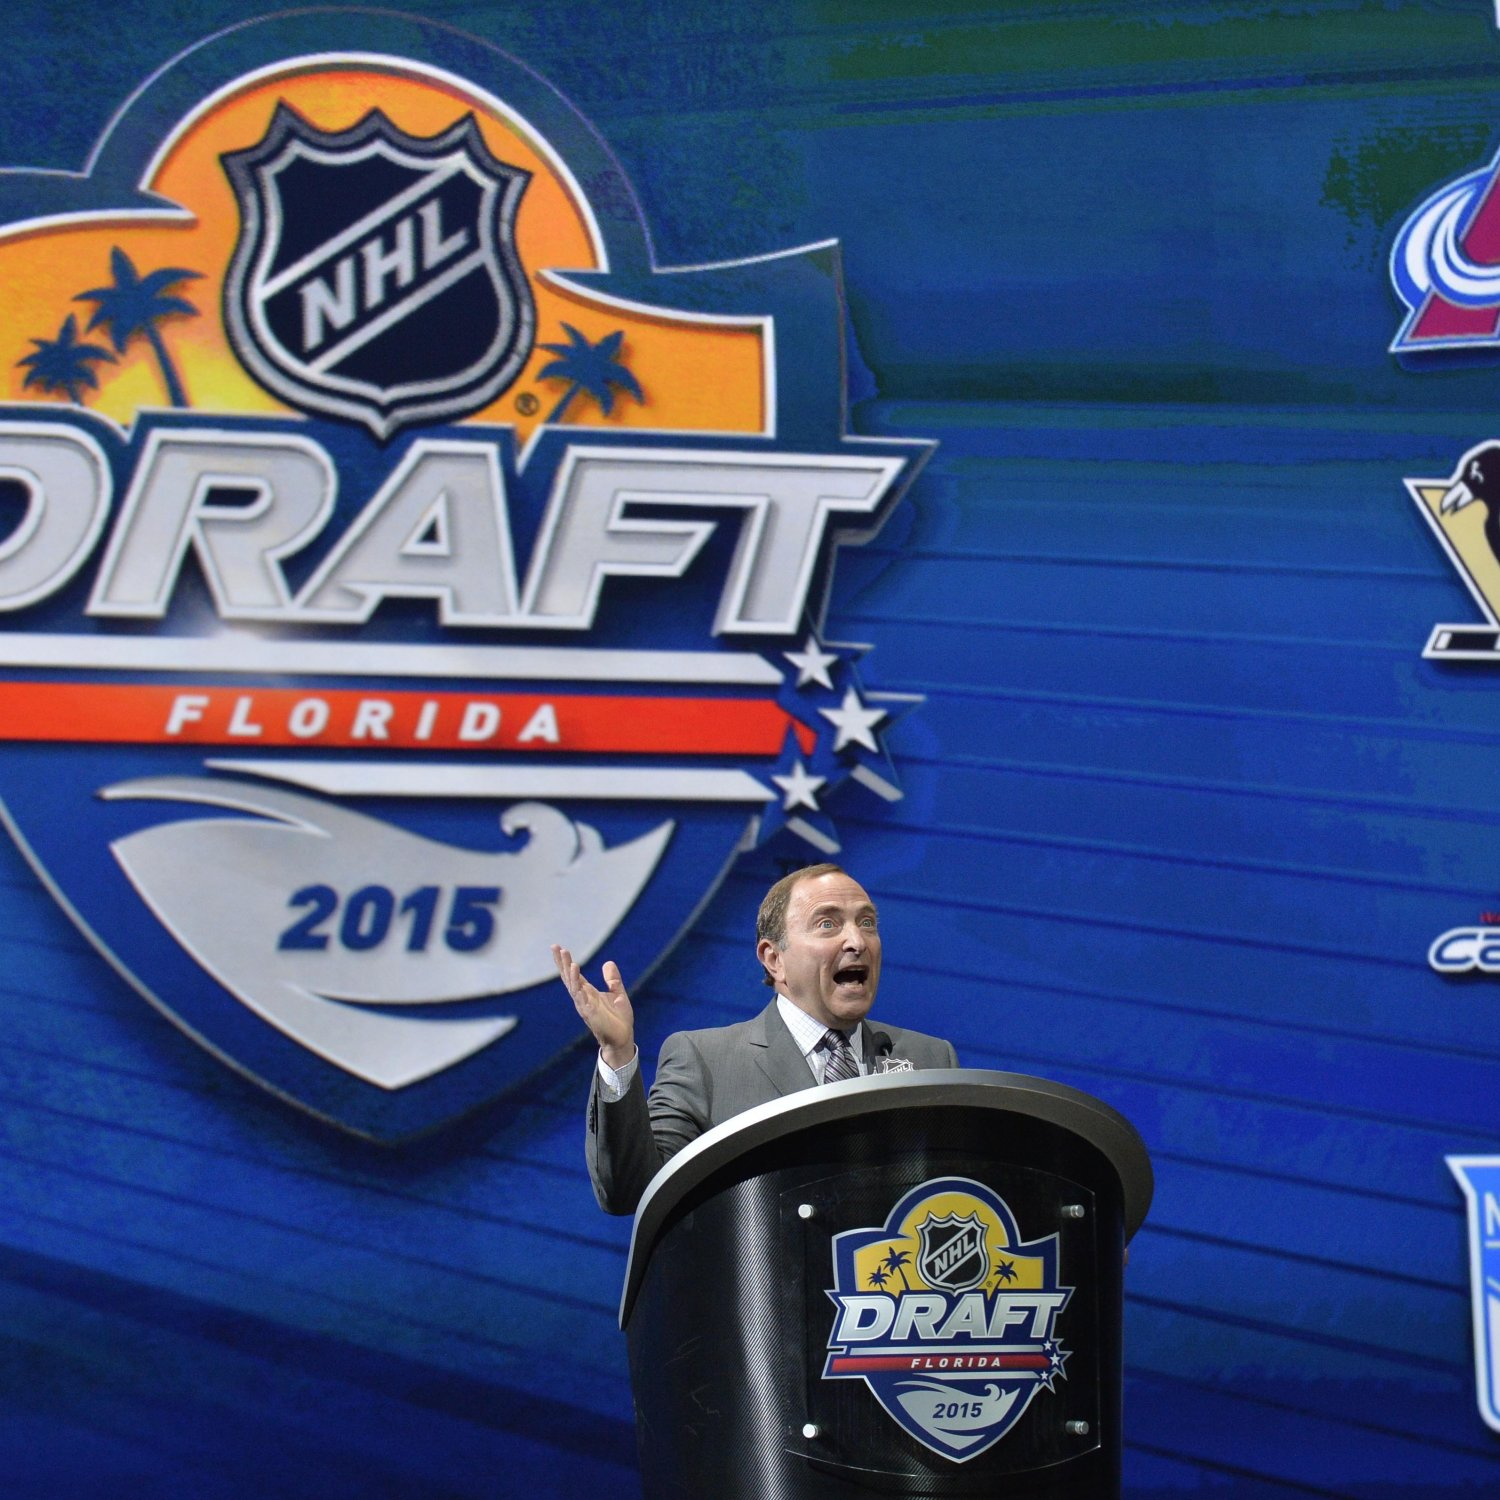 NHL Draft 2015: Day 2 TV, Live Stream, Schedule, Order And